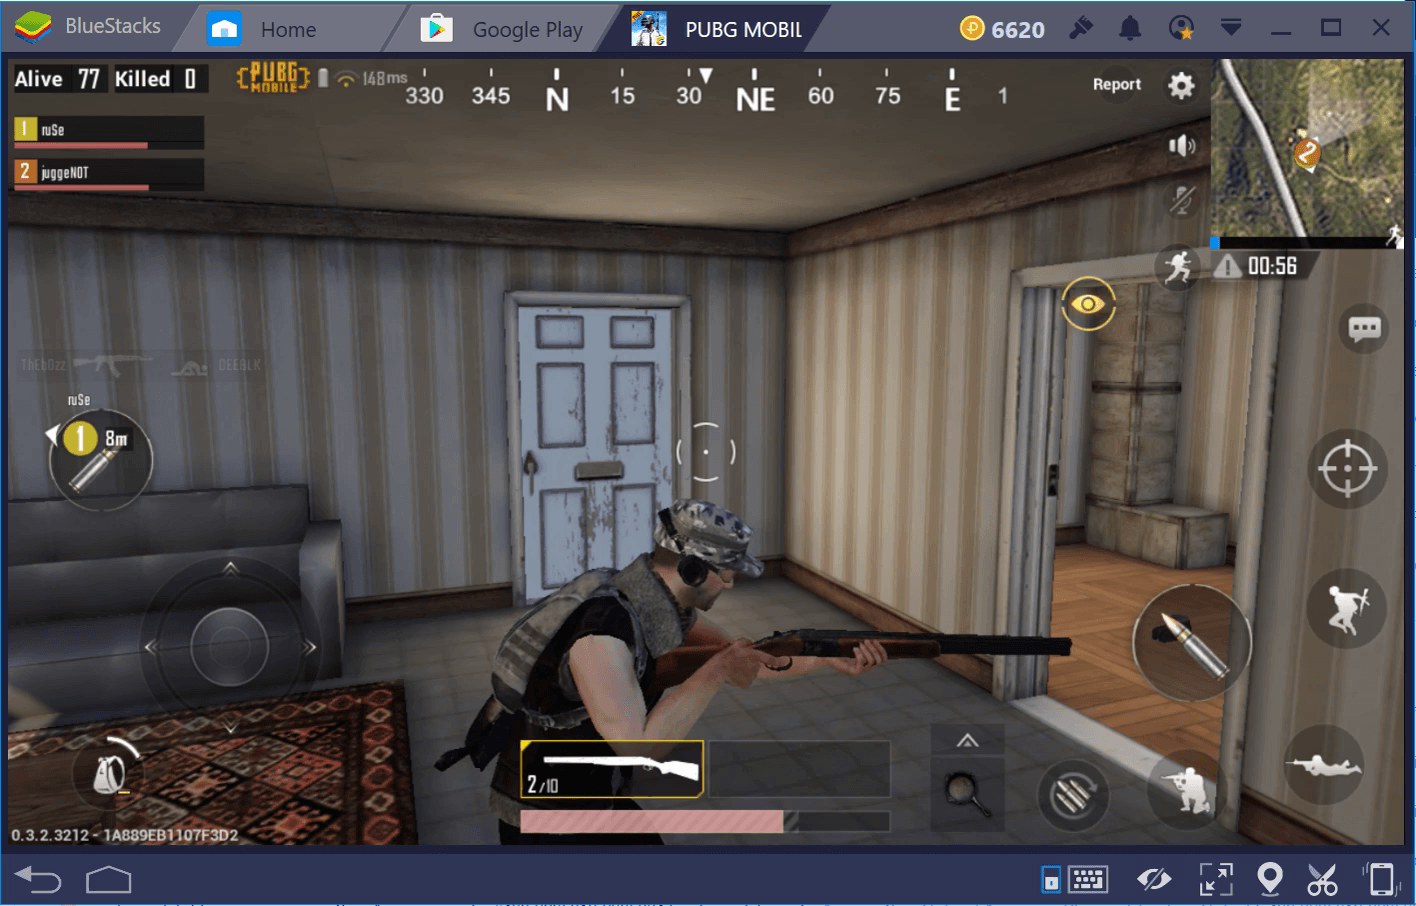 Ultimate Pubg Mobile Weapon Guide Bluestacks - pubg mobile shotguns